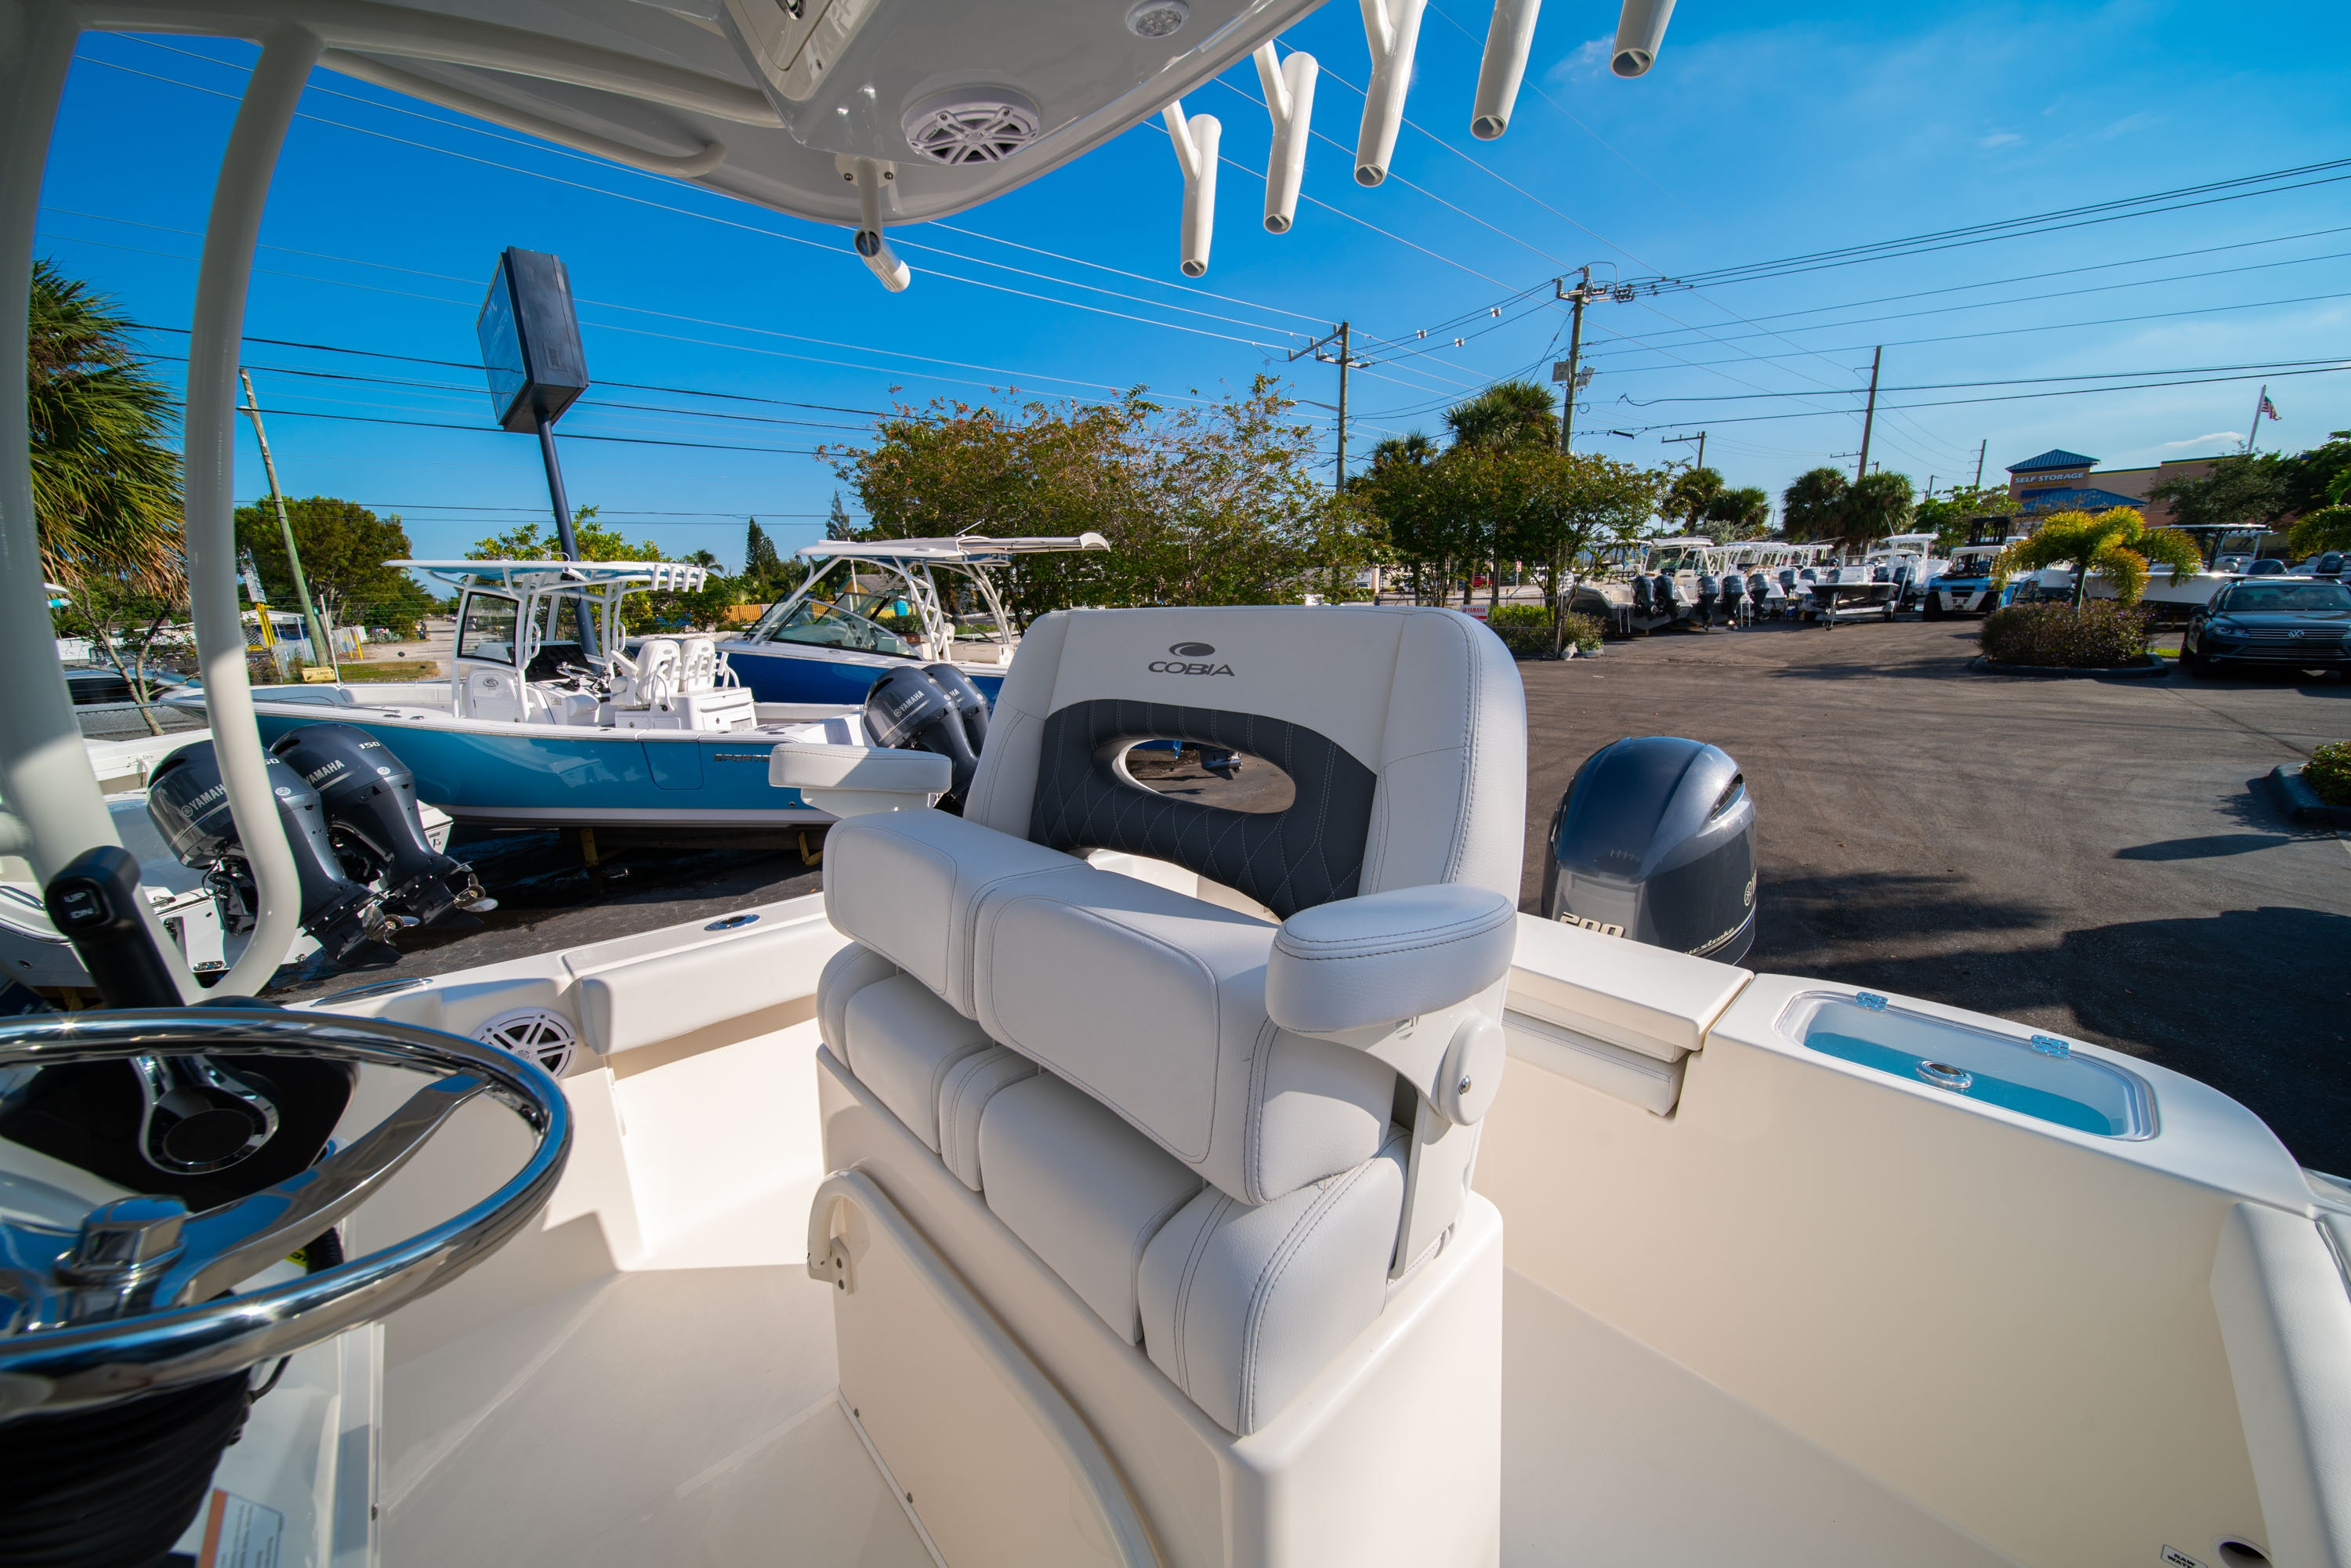 Thumbnail 28 for New 2020 Cobia 220 CC boat for sale in West Palm Beach, FL